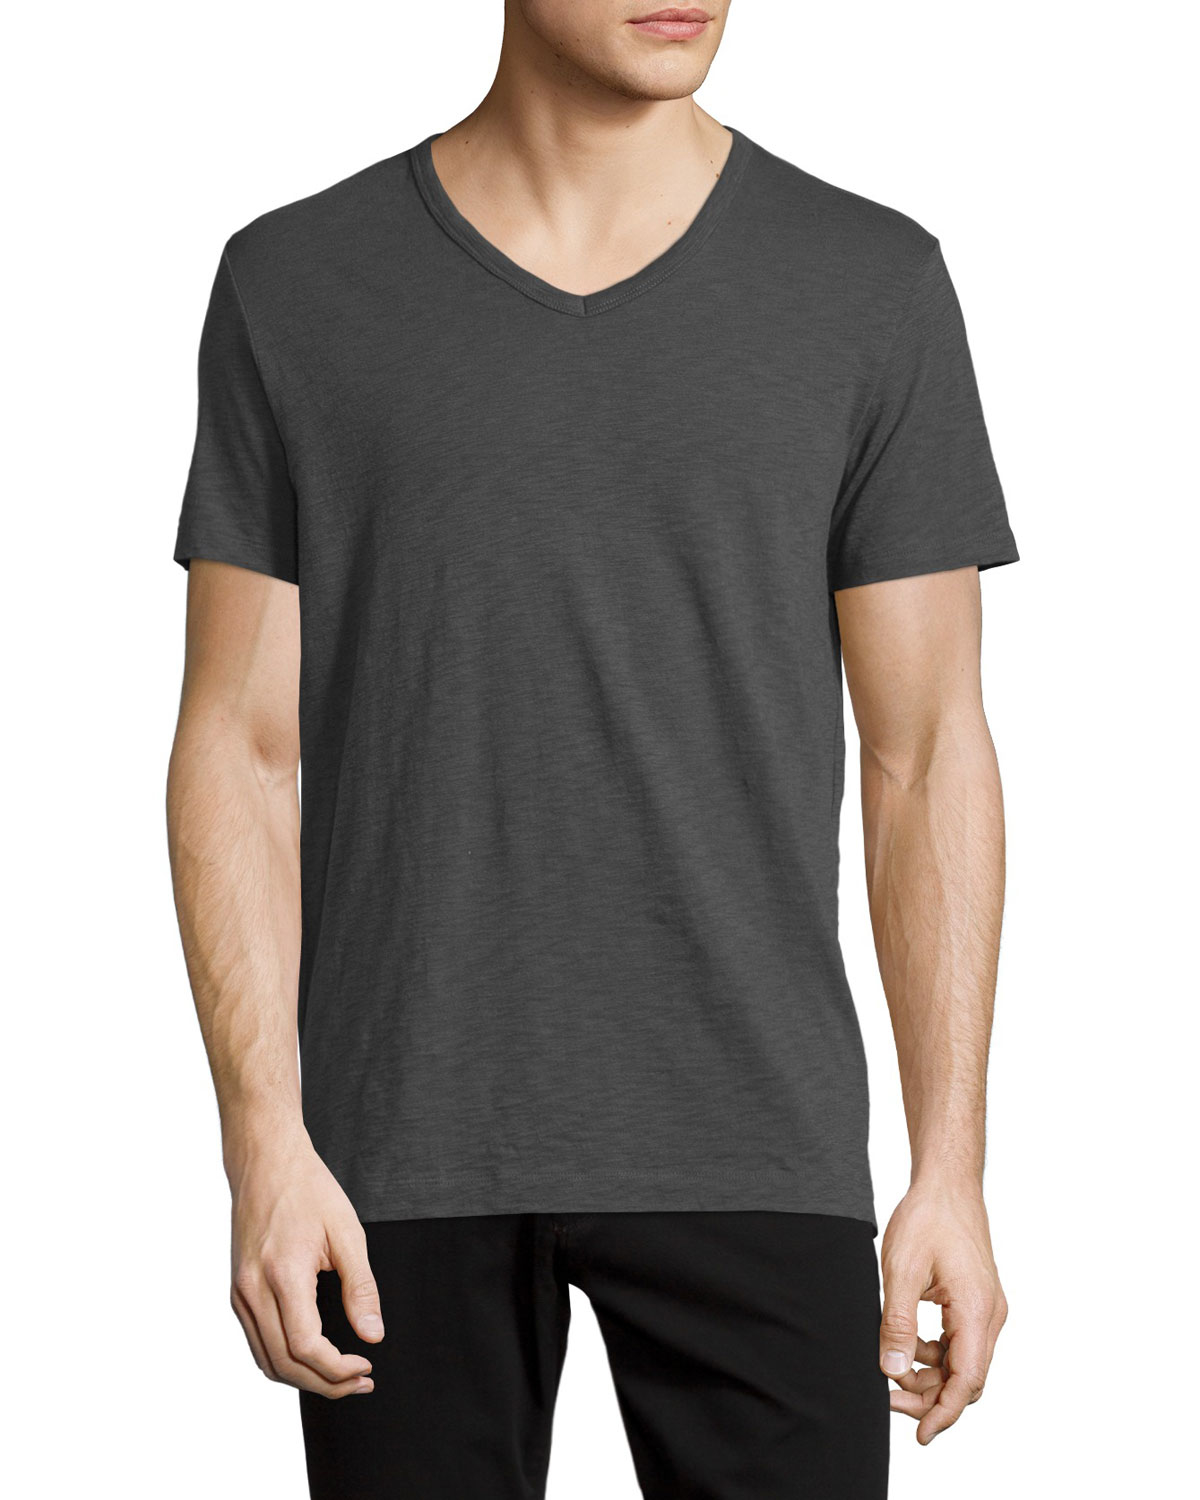 Vince slub jersey v neck t shirt in gray for men lyst for Vince tee shirts sale